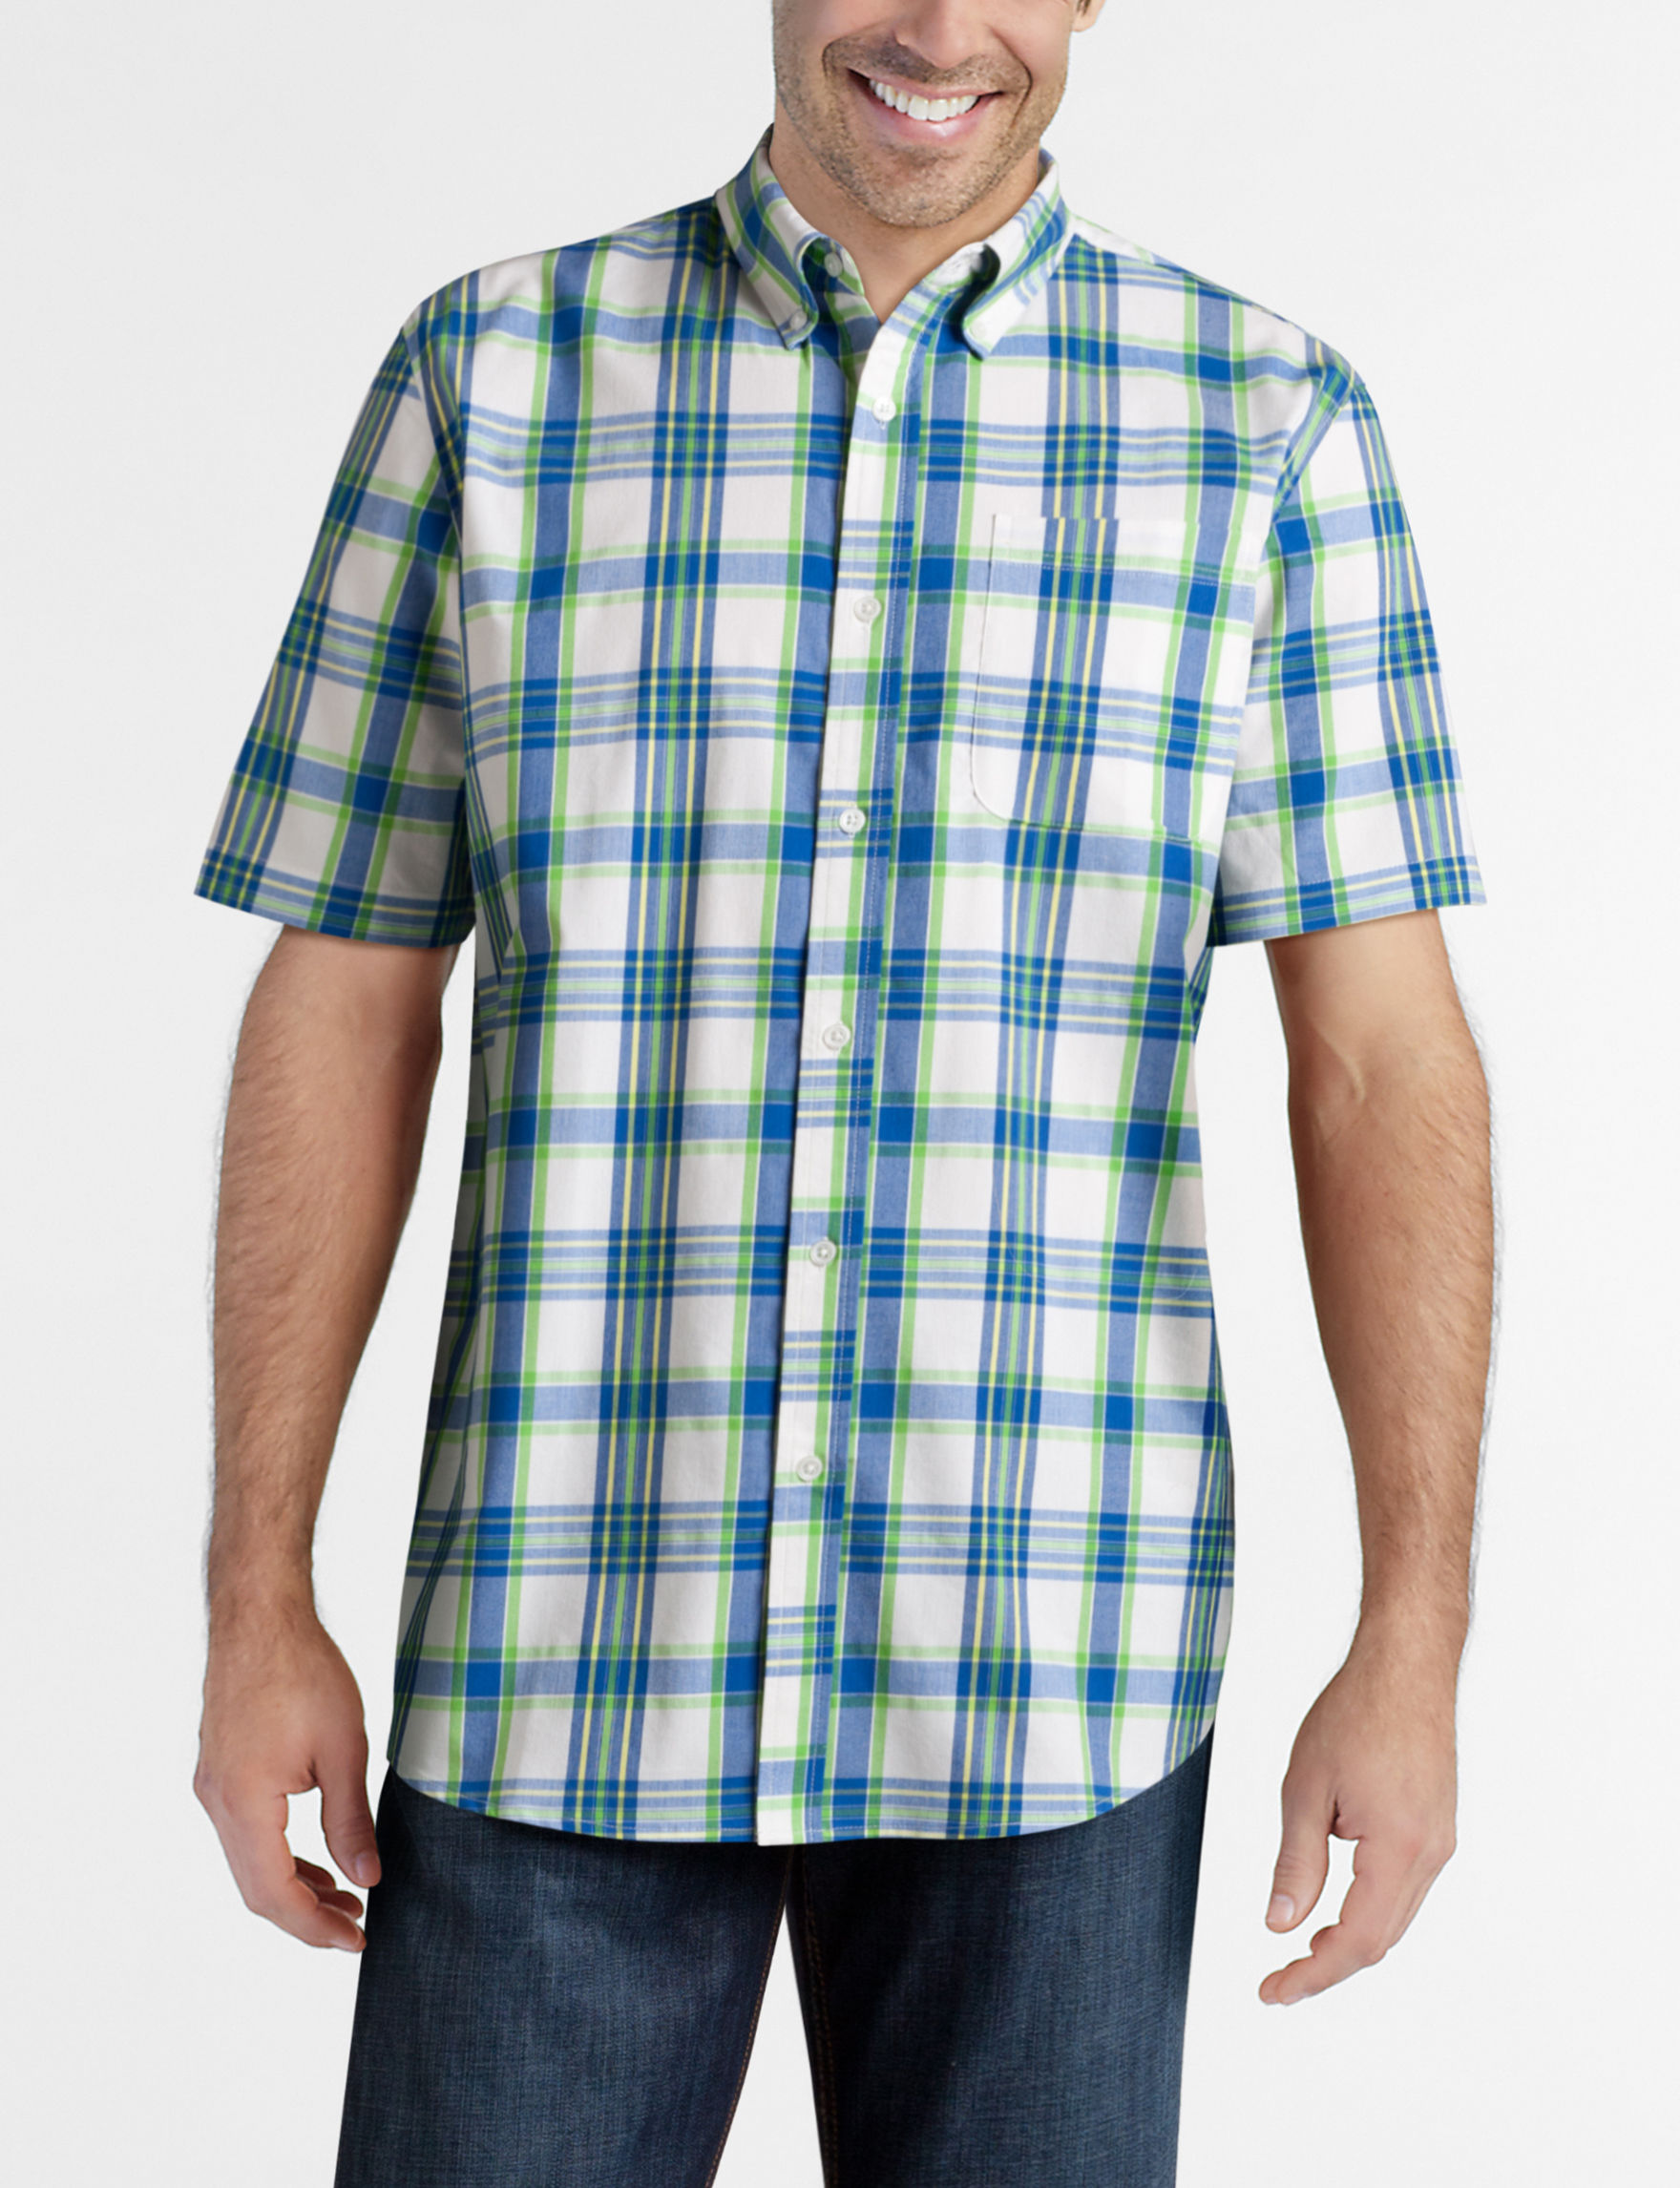 Sun River Green Plaid Casual Button Down Shirts